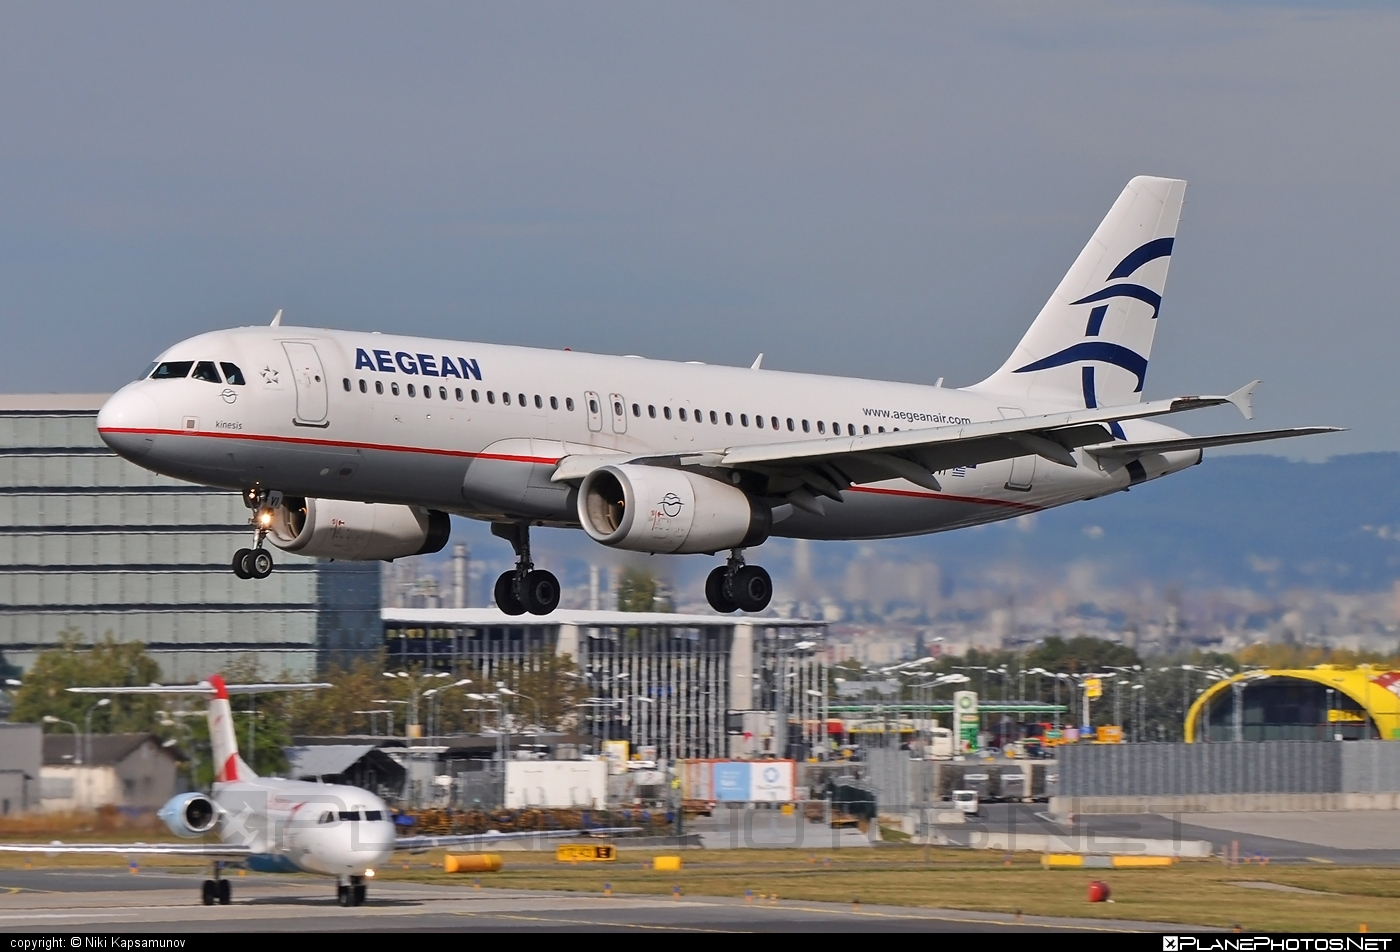 Airbus A320-232 - SX-DVI operated by Aegean Airlines #a320 #a320family #airbus #airbus320